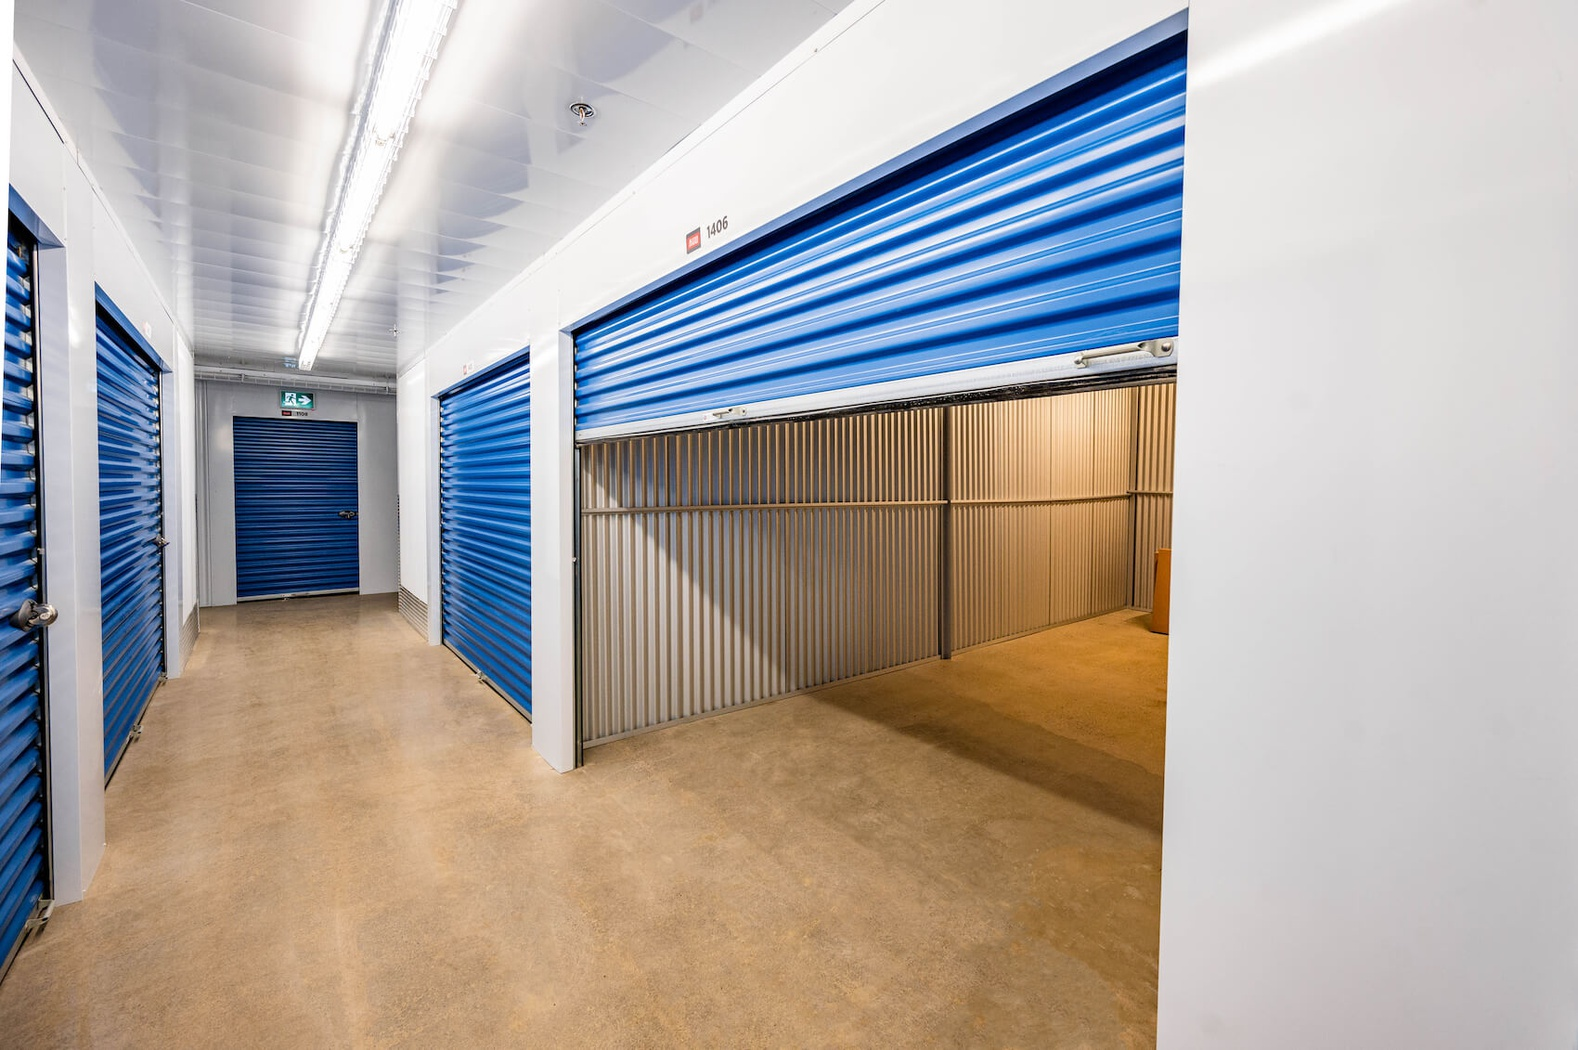 Visit Access Storage's Whitby location if you want to rent storage units. We offer a range of affordable self-storage units and your first 4 weeks are free!